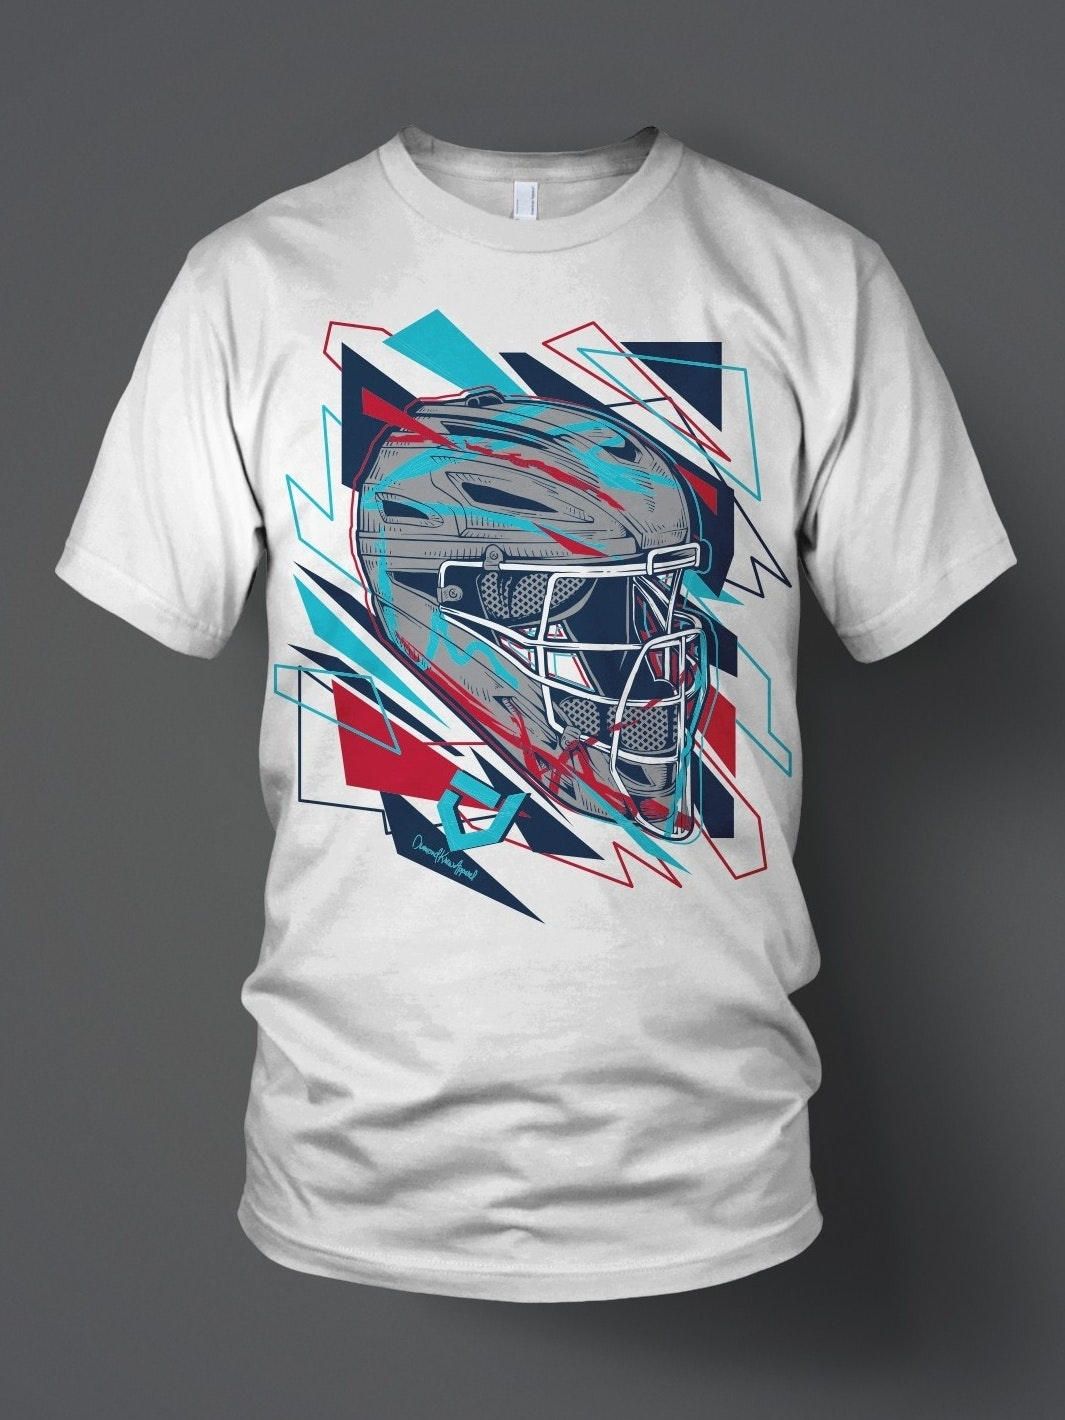 Geometric style umpire helmet illustration